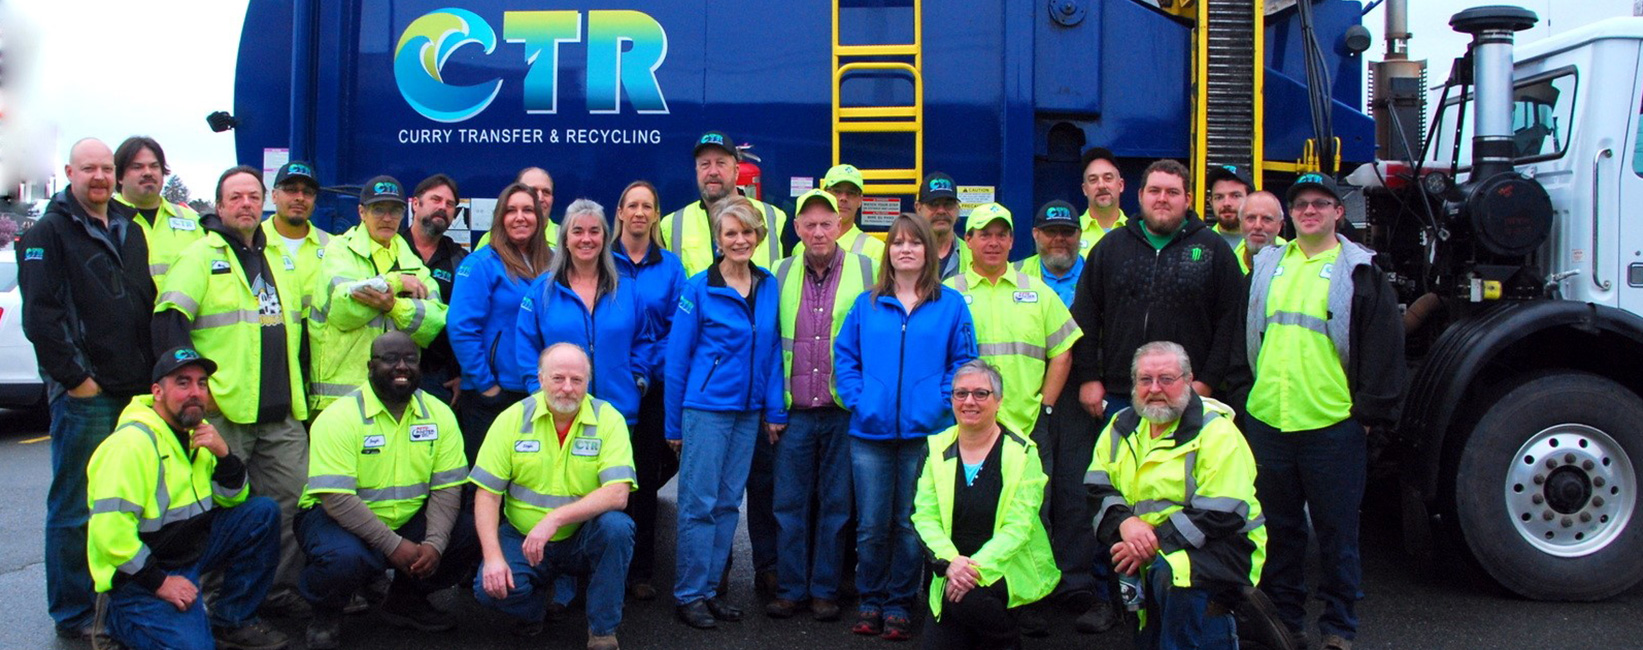 Meet Curry Transfer and Recycling's employees